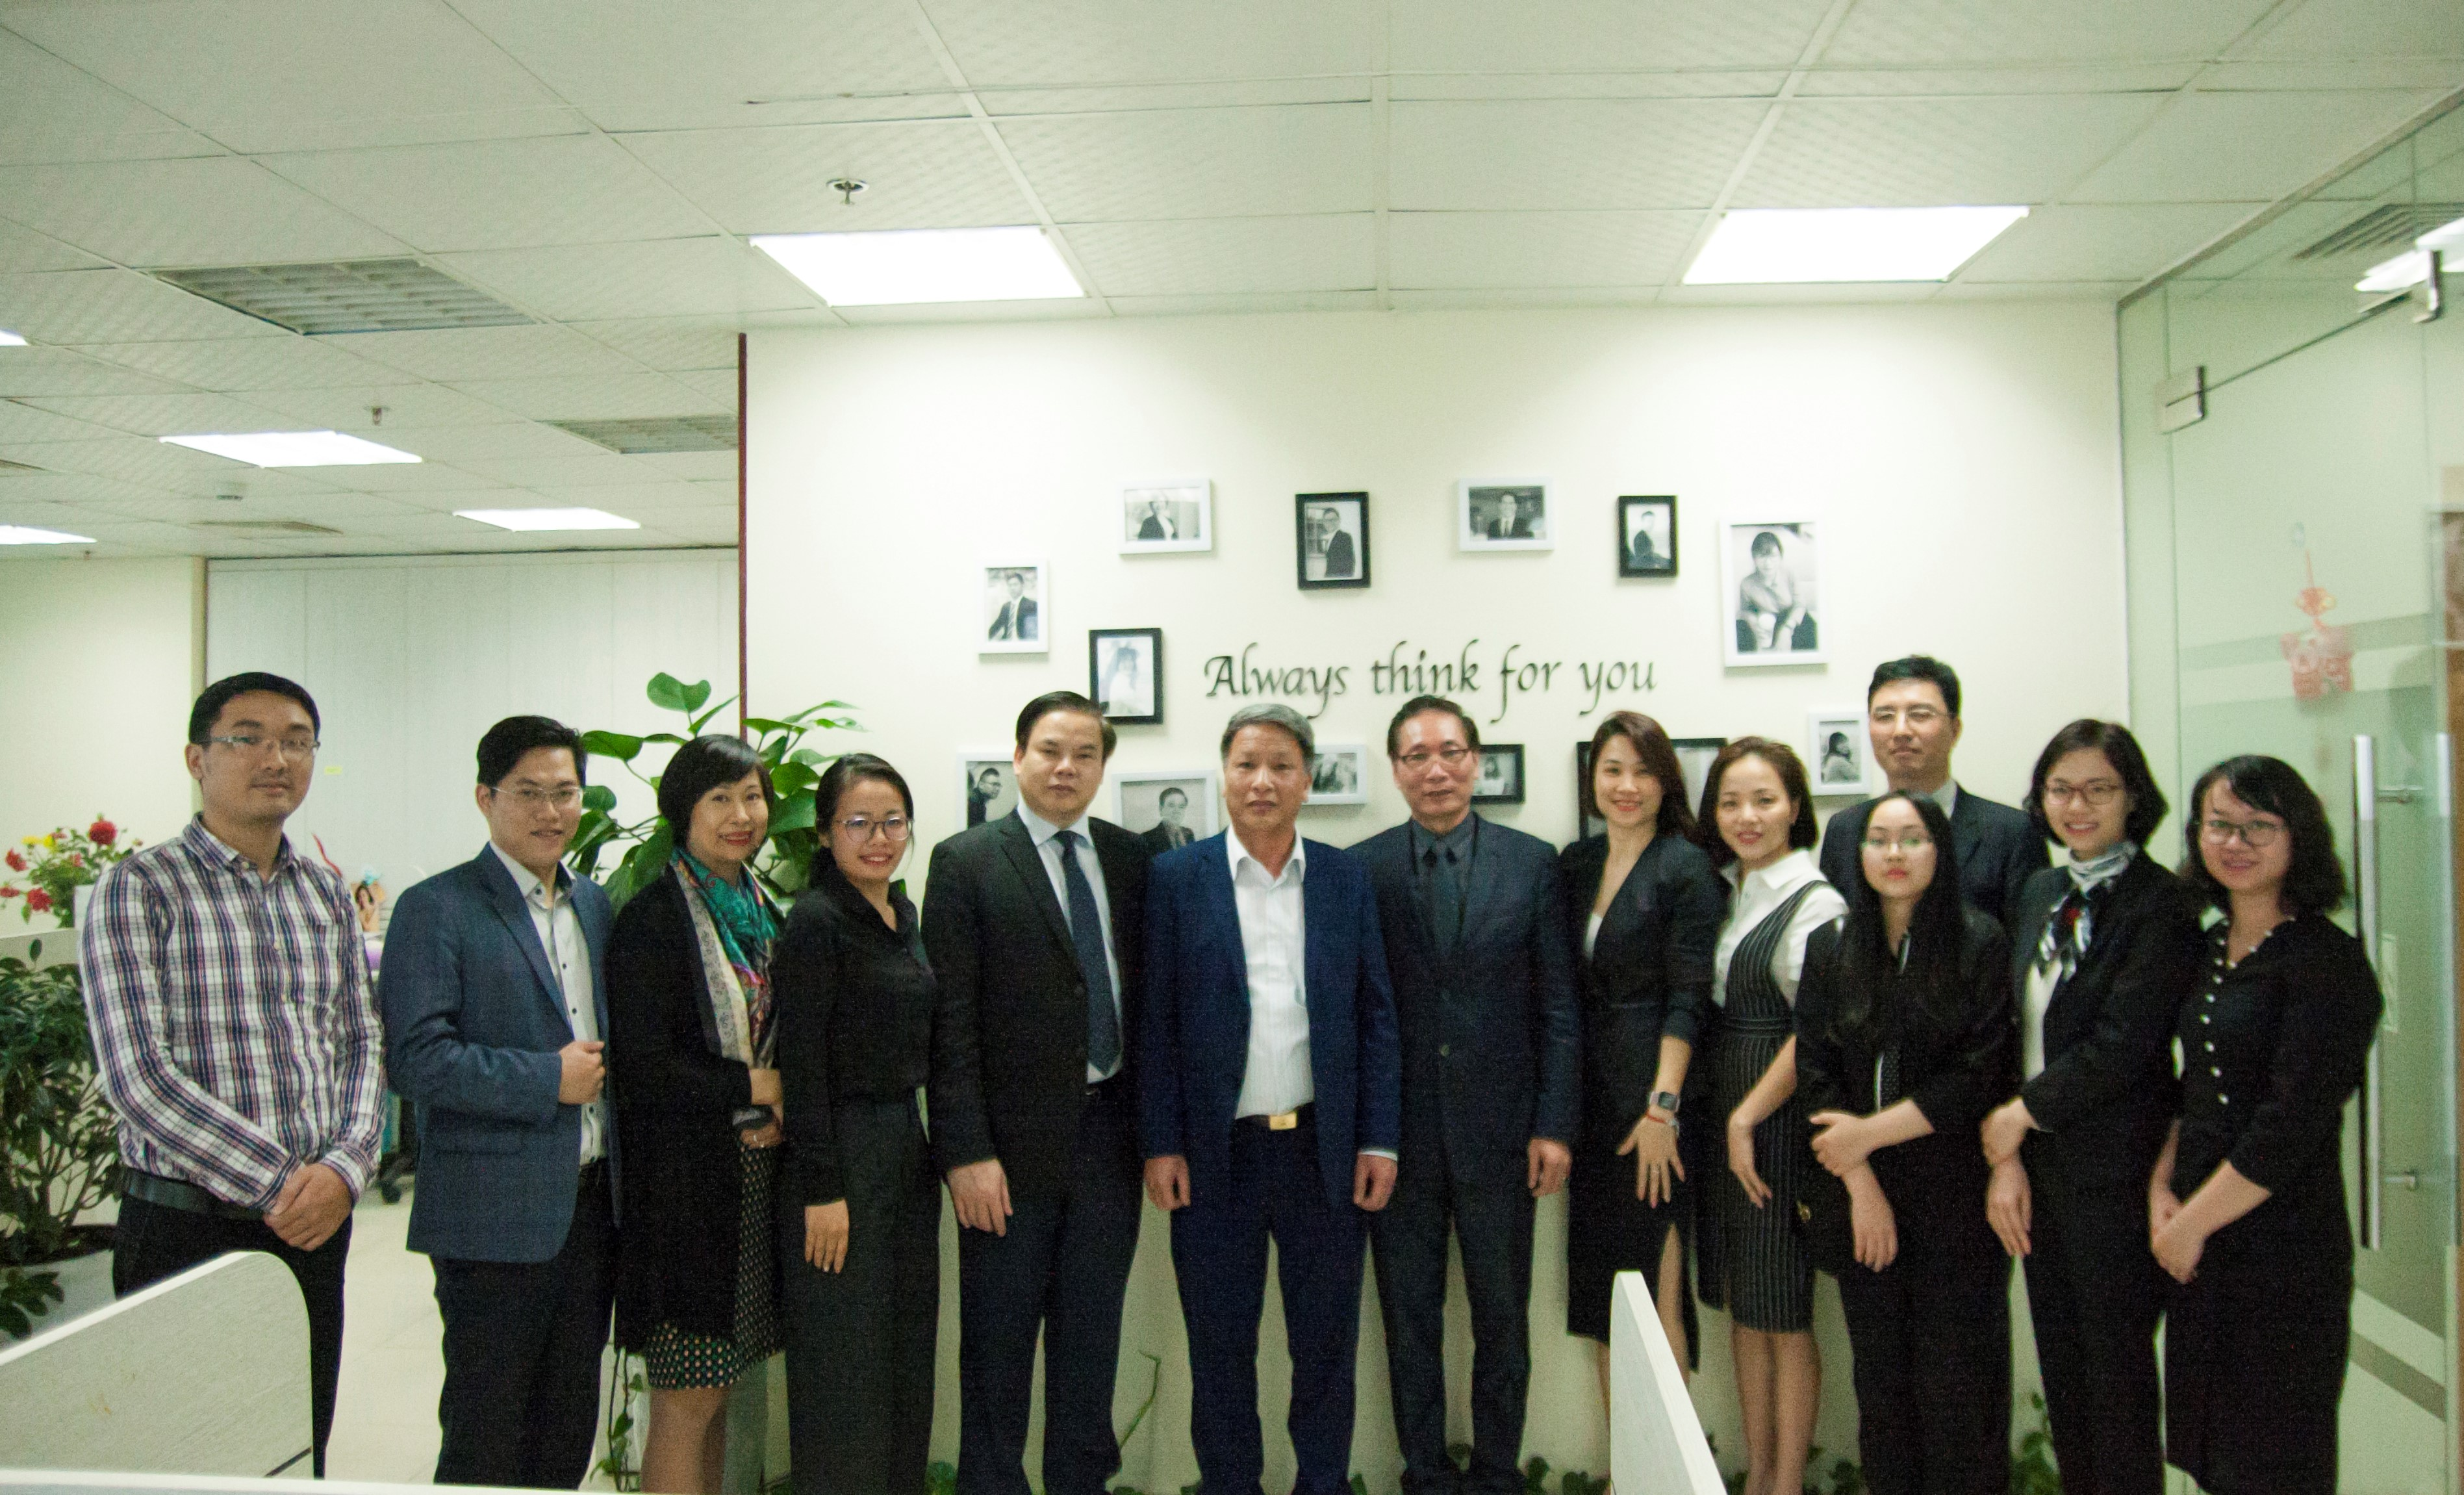 The Managing Board of Hanoi Bar Association visited Vietthink on the occasion of the beginning of the Lunar New Year 2019